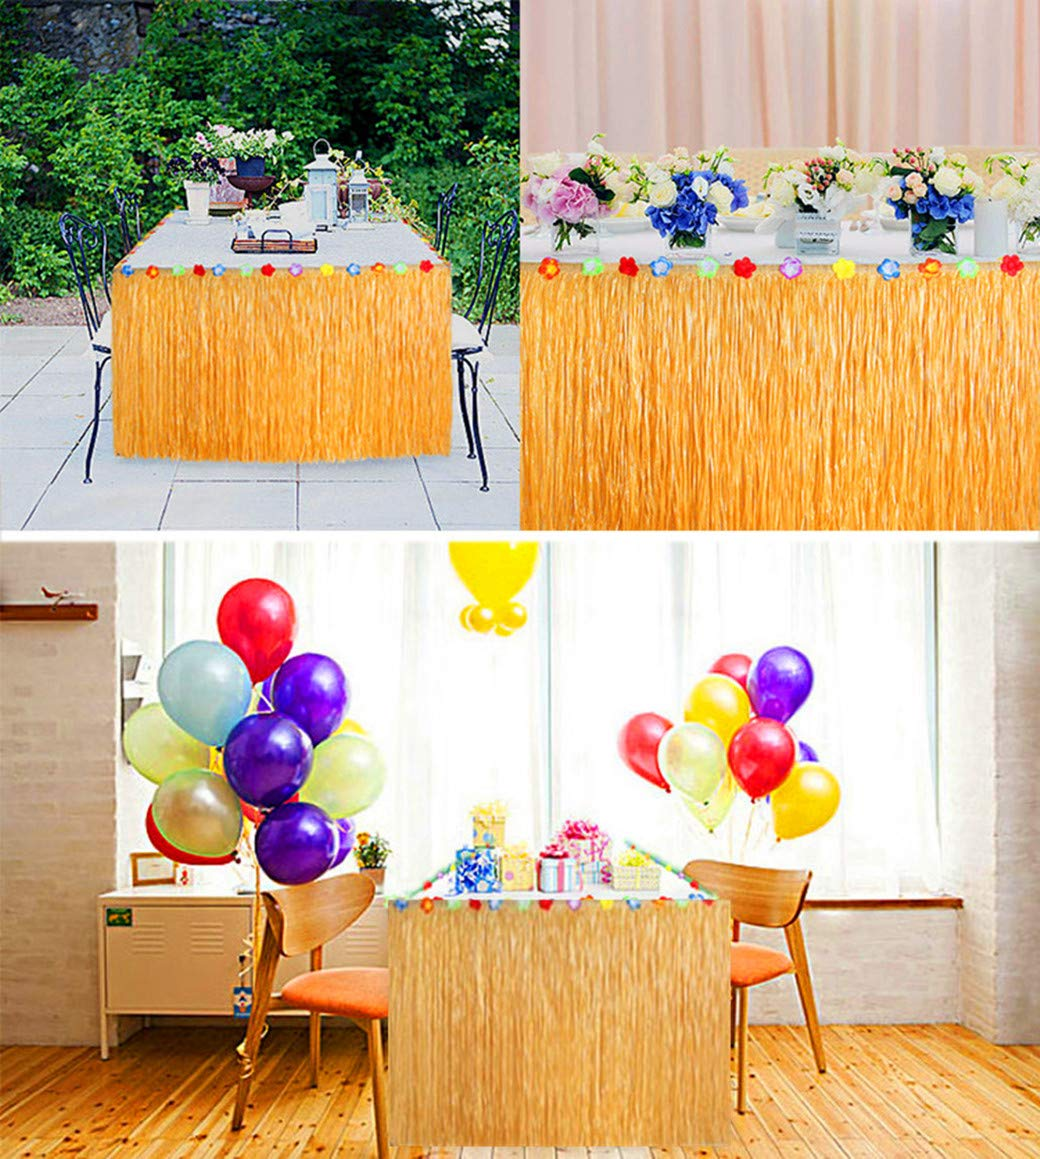 Table Skirt Party Supplies outdoor Activities Decoration Home Decoration Magic Buckle Connection Yellow Grass Table Skirt Wedding Decoration Party Set Festival Decoration Green Decoration